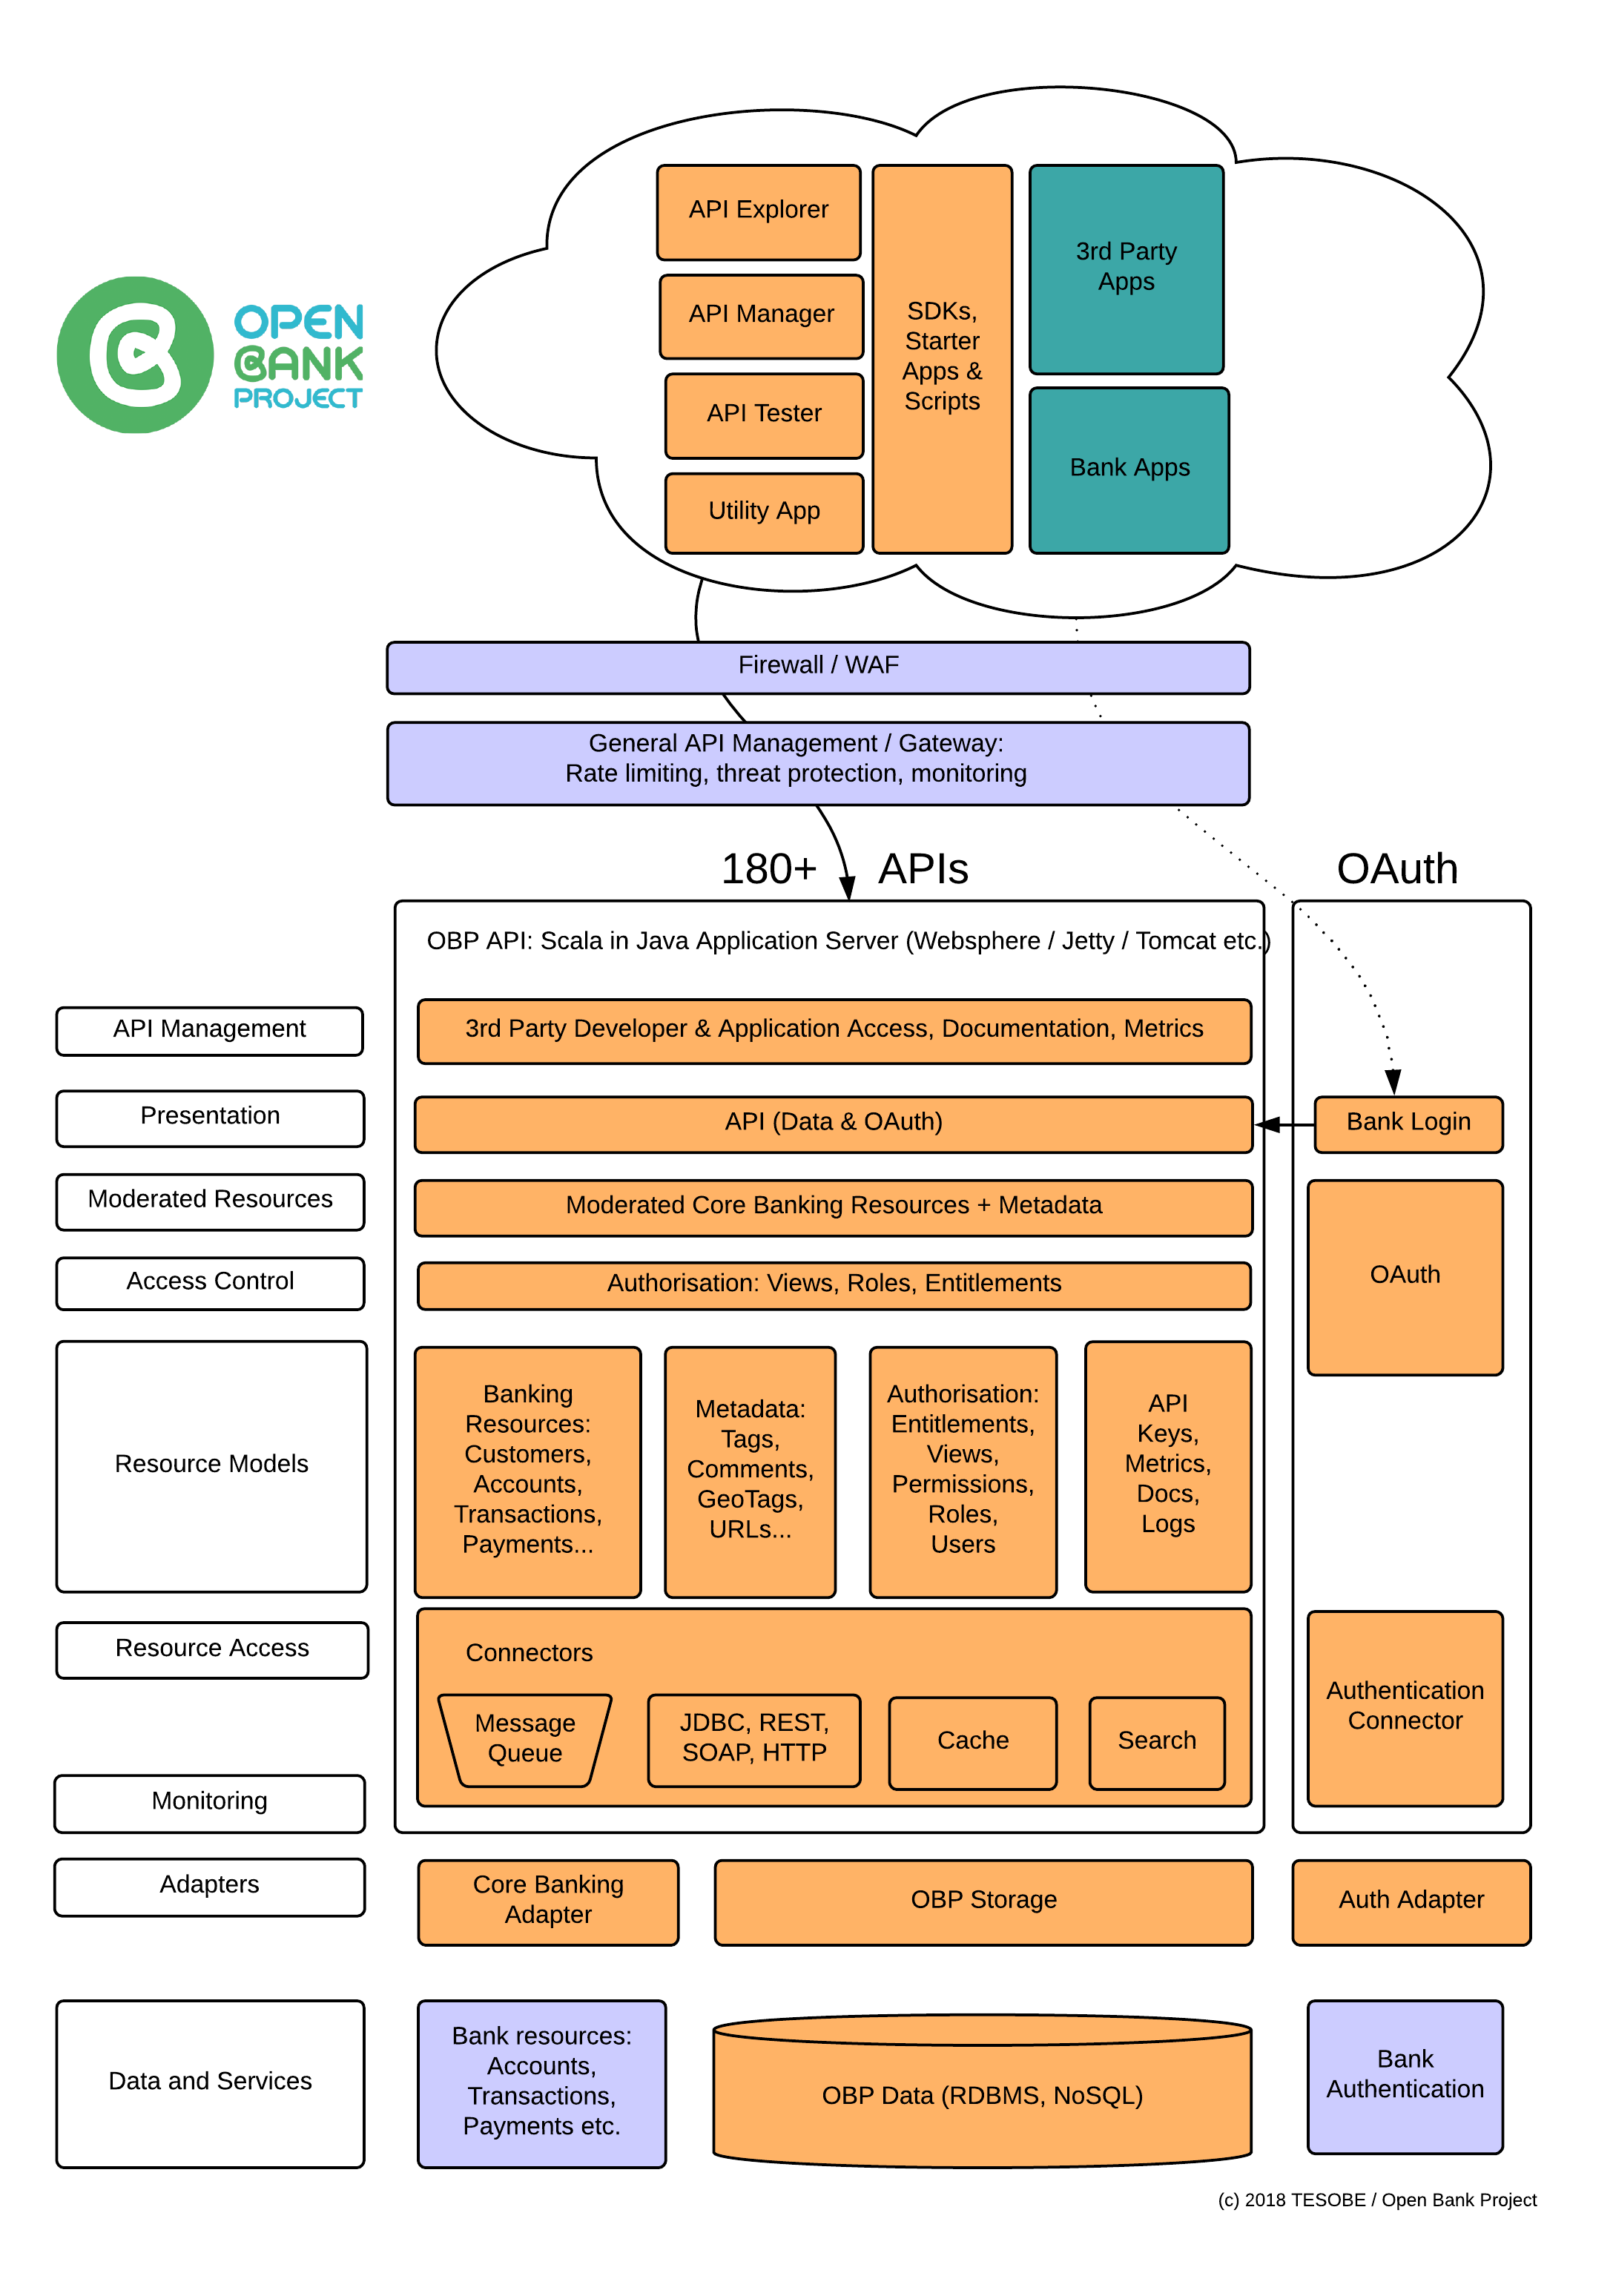 Open bank project architecture openbankprojectobp api wiki github open bank project architecture ccuart Gallery